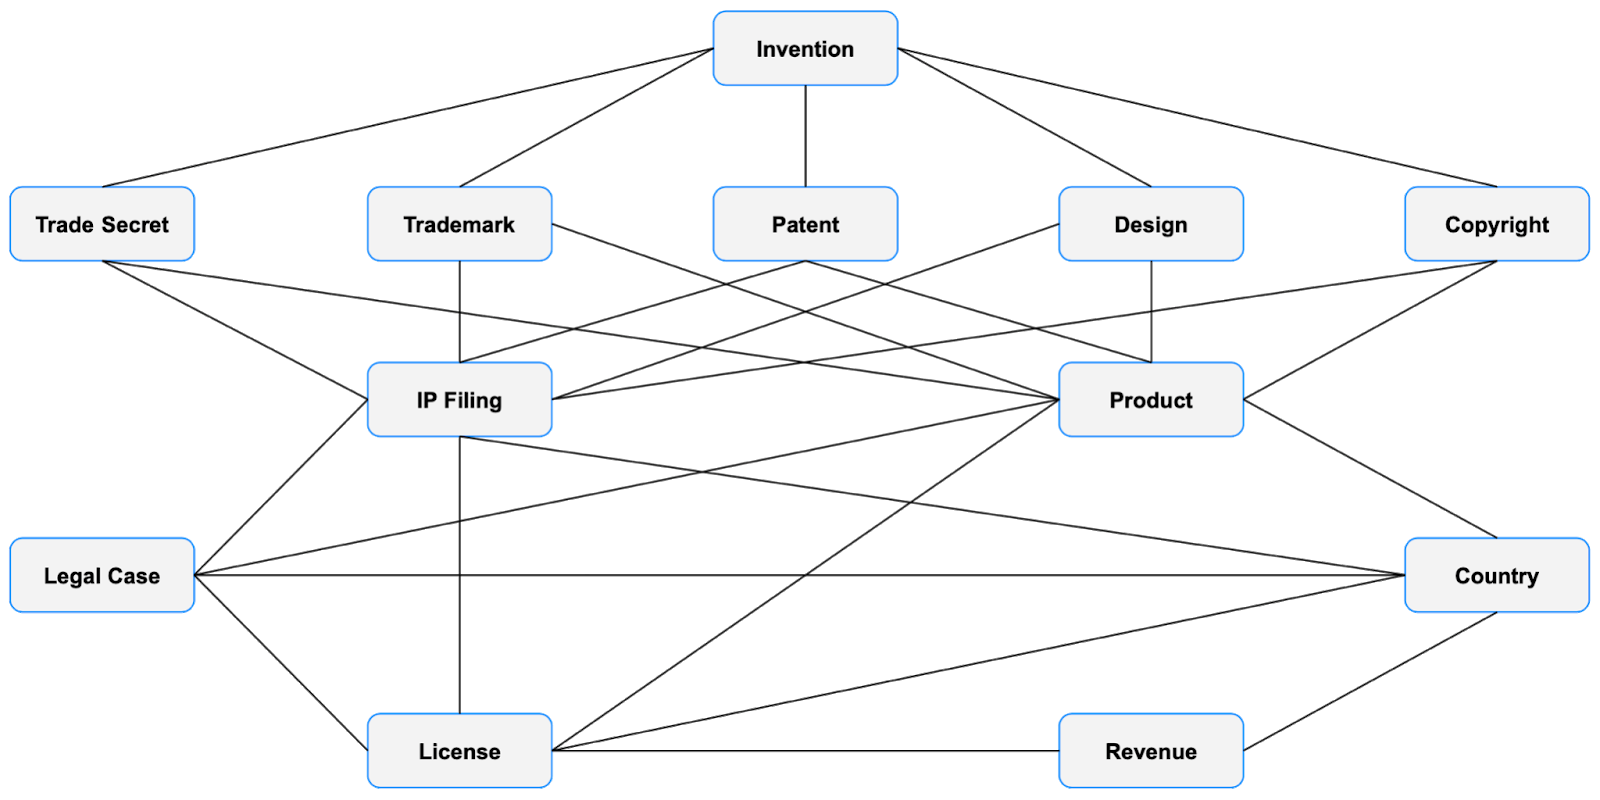 Visualized IP asset information and its lineage influencing dependencies like inventions, products, revenues, IP filing strategy, and related legal cases, i.e. infringements and litigation.